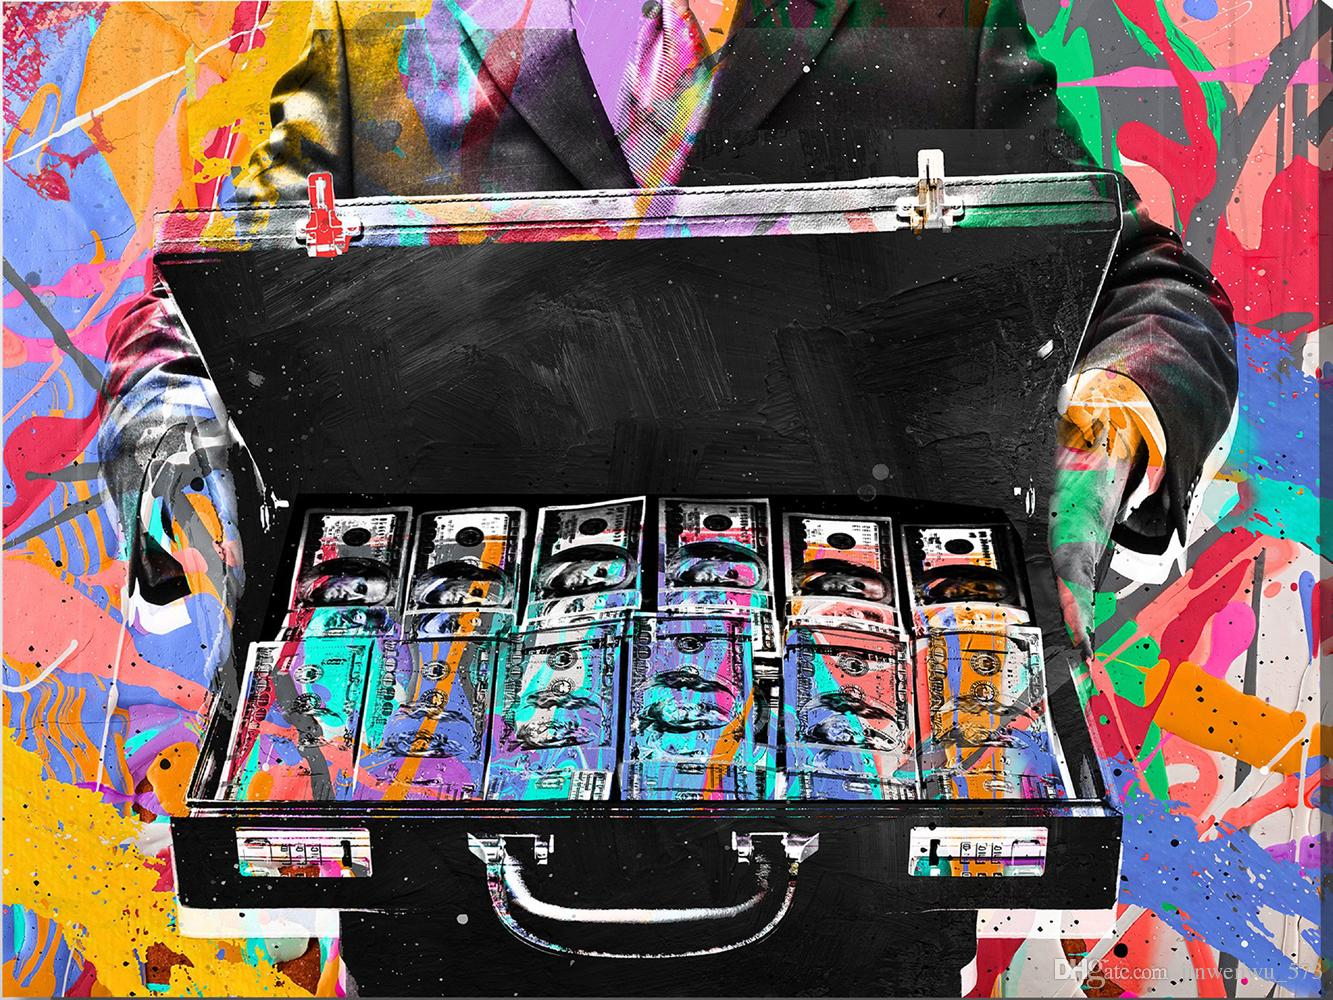 2019 unframed alec monopoly briefcase moneyhd canvas print home decor wall art paintingoffice art culture from jinwenwu 573 7 69 dhgate com